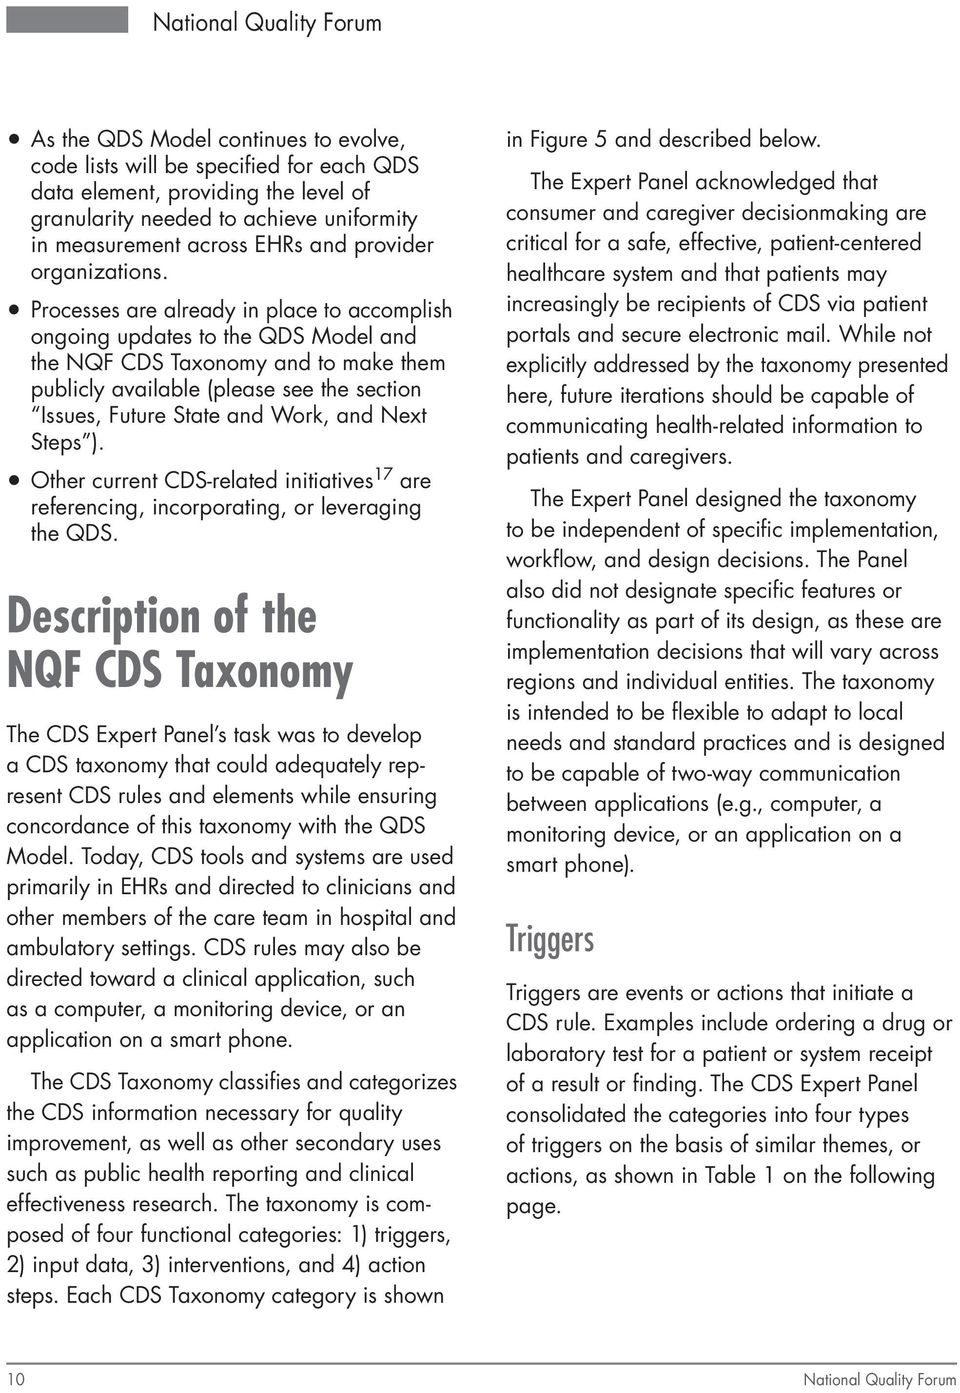 Processes are already in place to accomplish ongoing updates to the QDS Model and the NQF CDS Taxonomy and to make them publicly available (please see the section Issues, Future State and Work, and